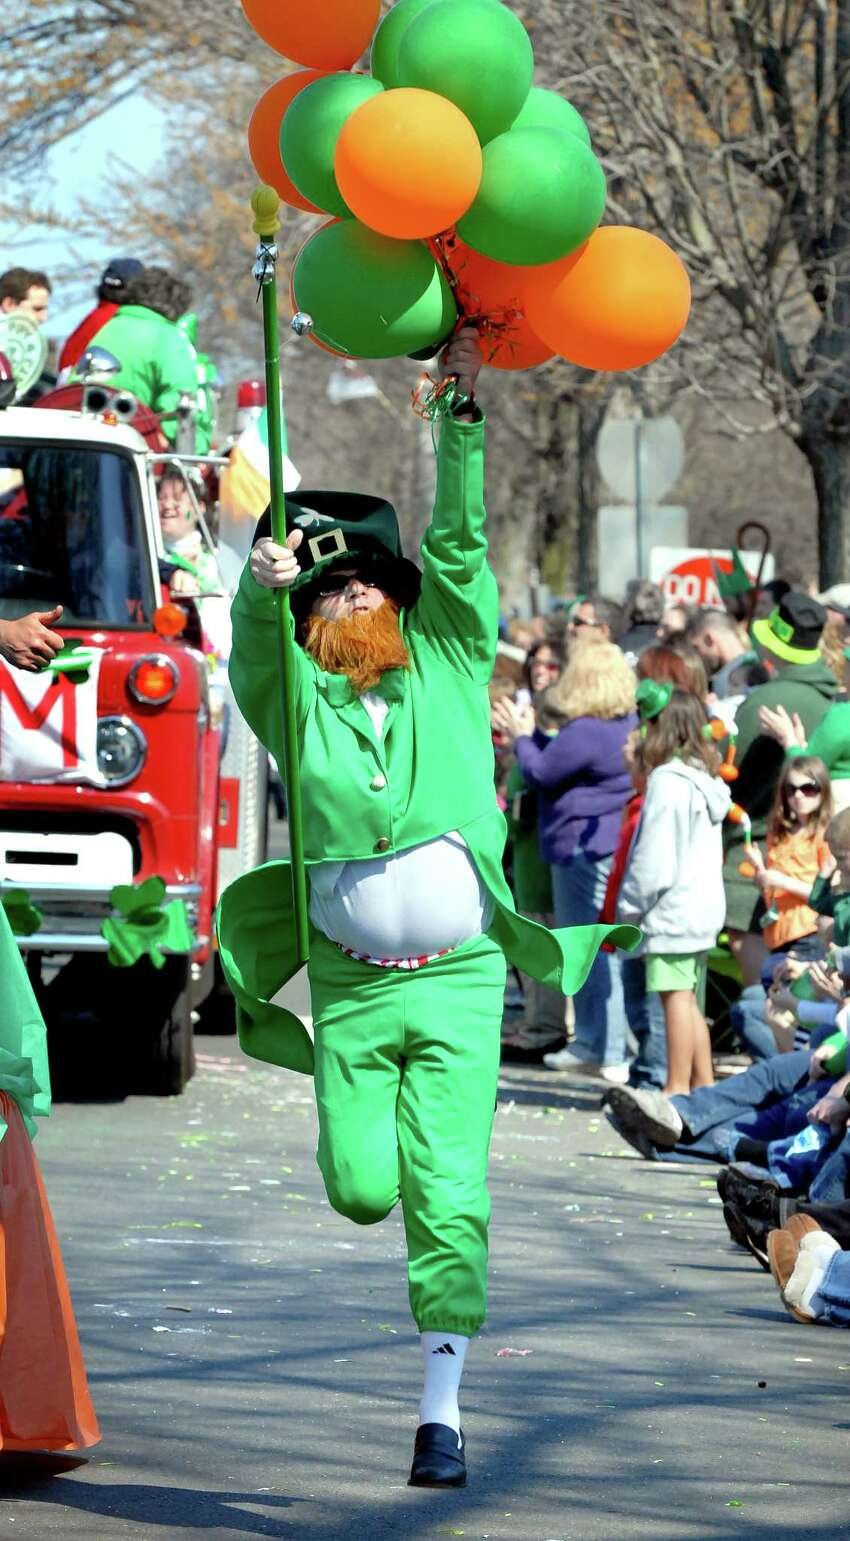 Ron Lombard of Milford appears to float into the air during the St. Patrick's Day Parade in Milford on 3/21/2010. Photo by Arnold Gold AG0356E